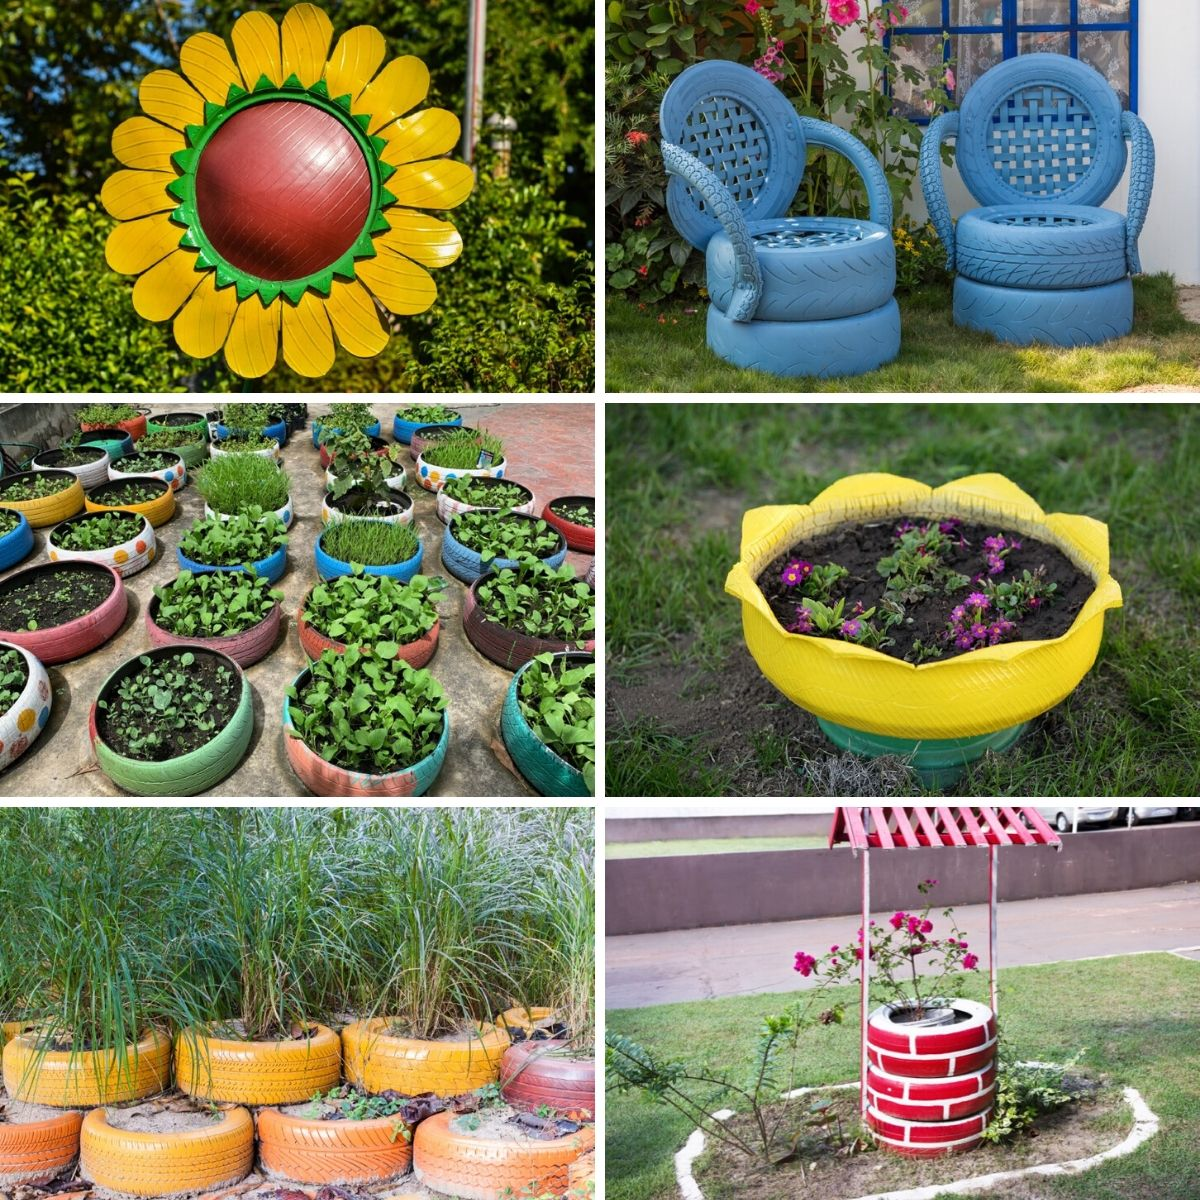 30 Creative Ways To Use Old Tires In Your Garden Diy Crafts